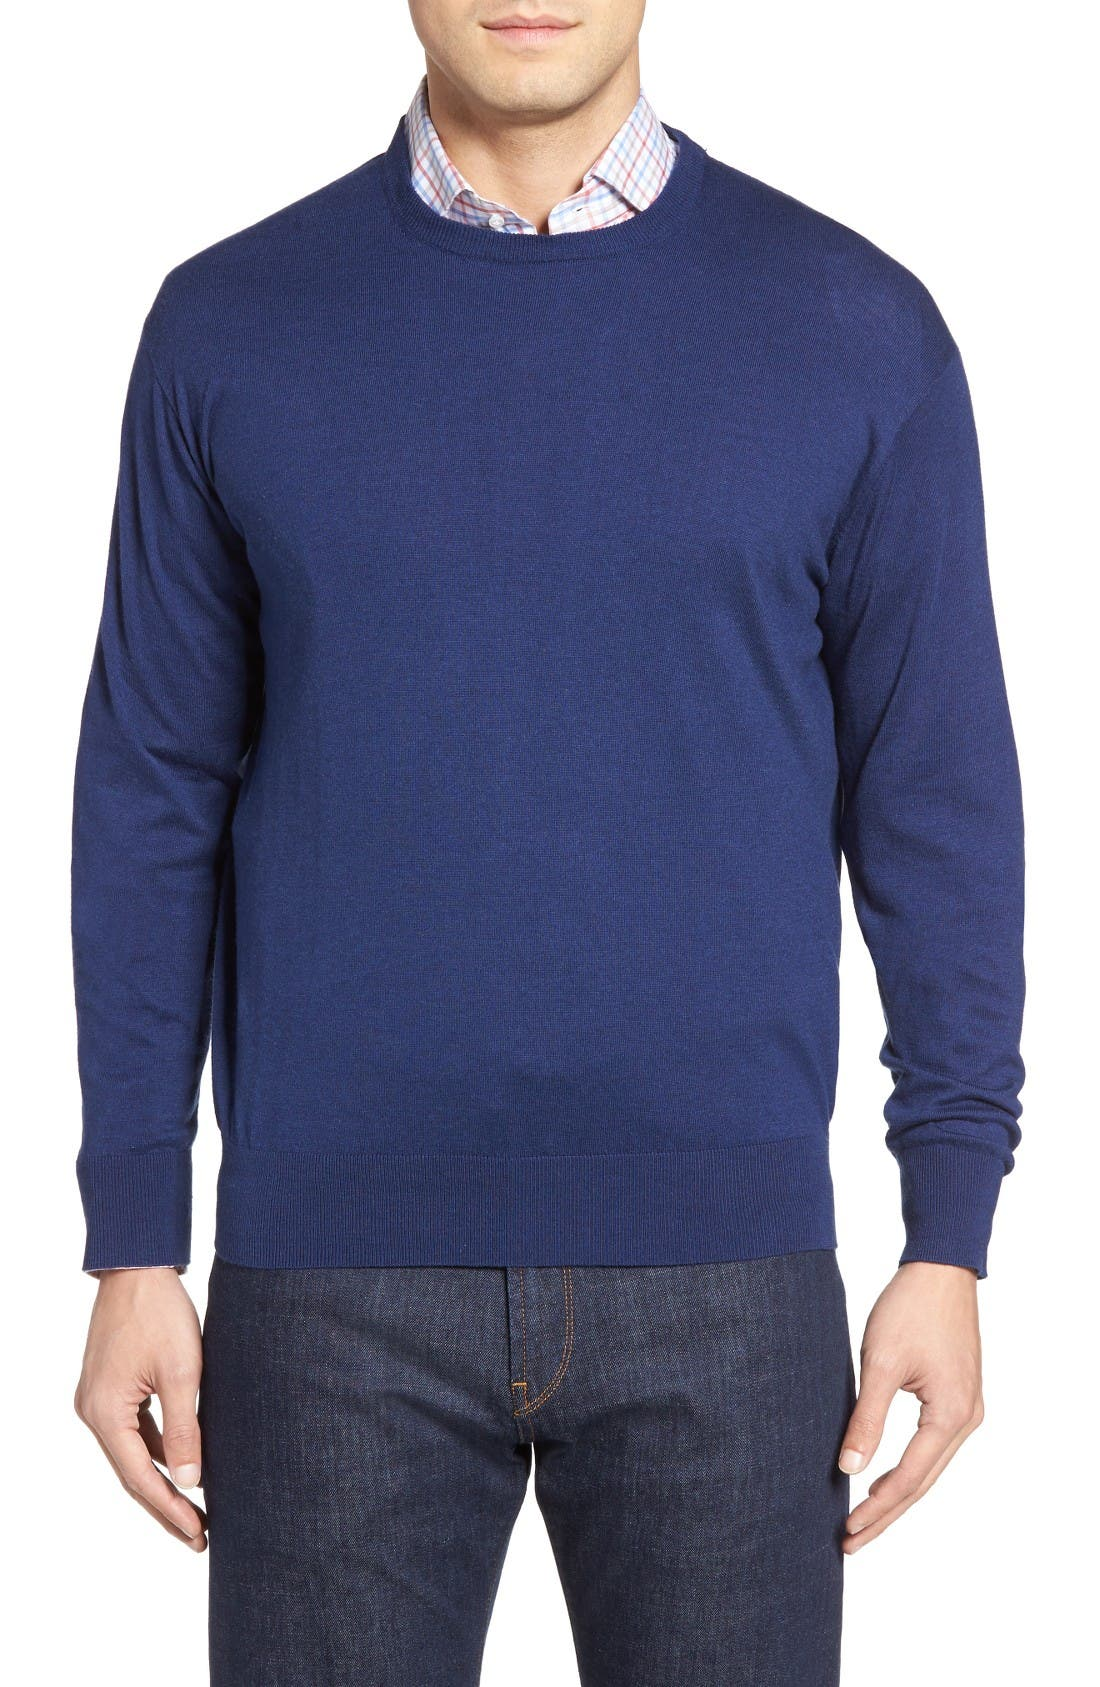 Main Image - Peter Millar Crown Sweatshirt